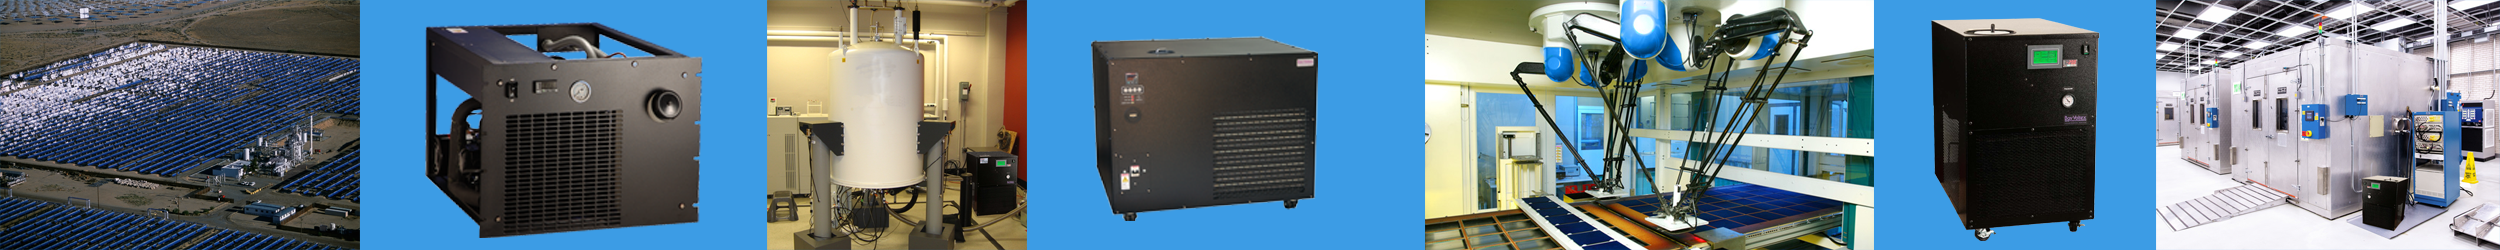 Chillers and Heat Exchangers from BV Thermal Systems are used in Research and Development